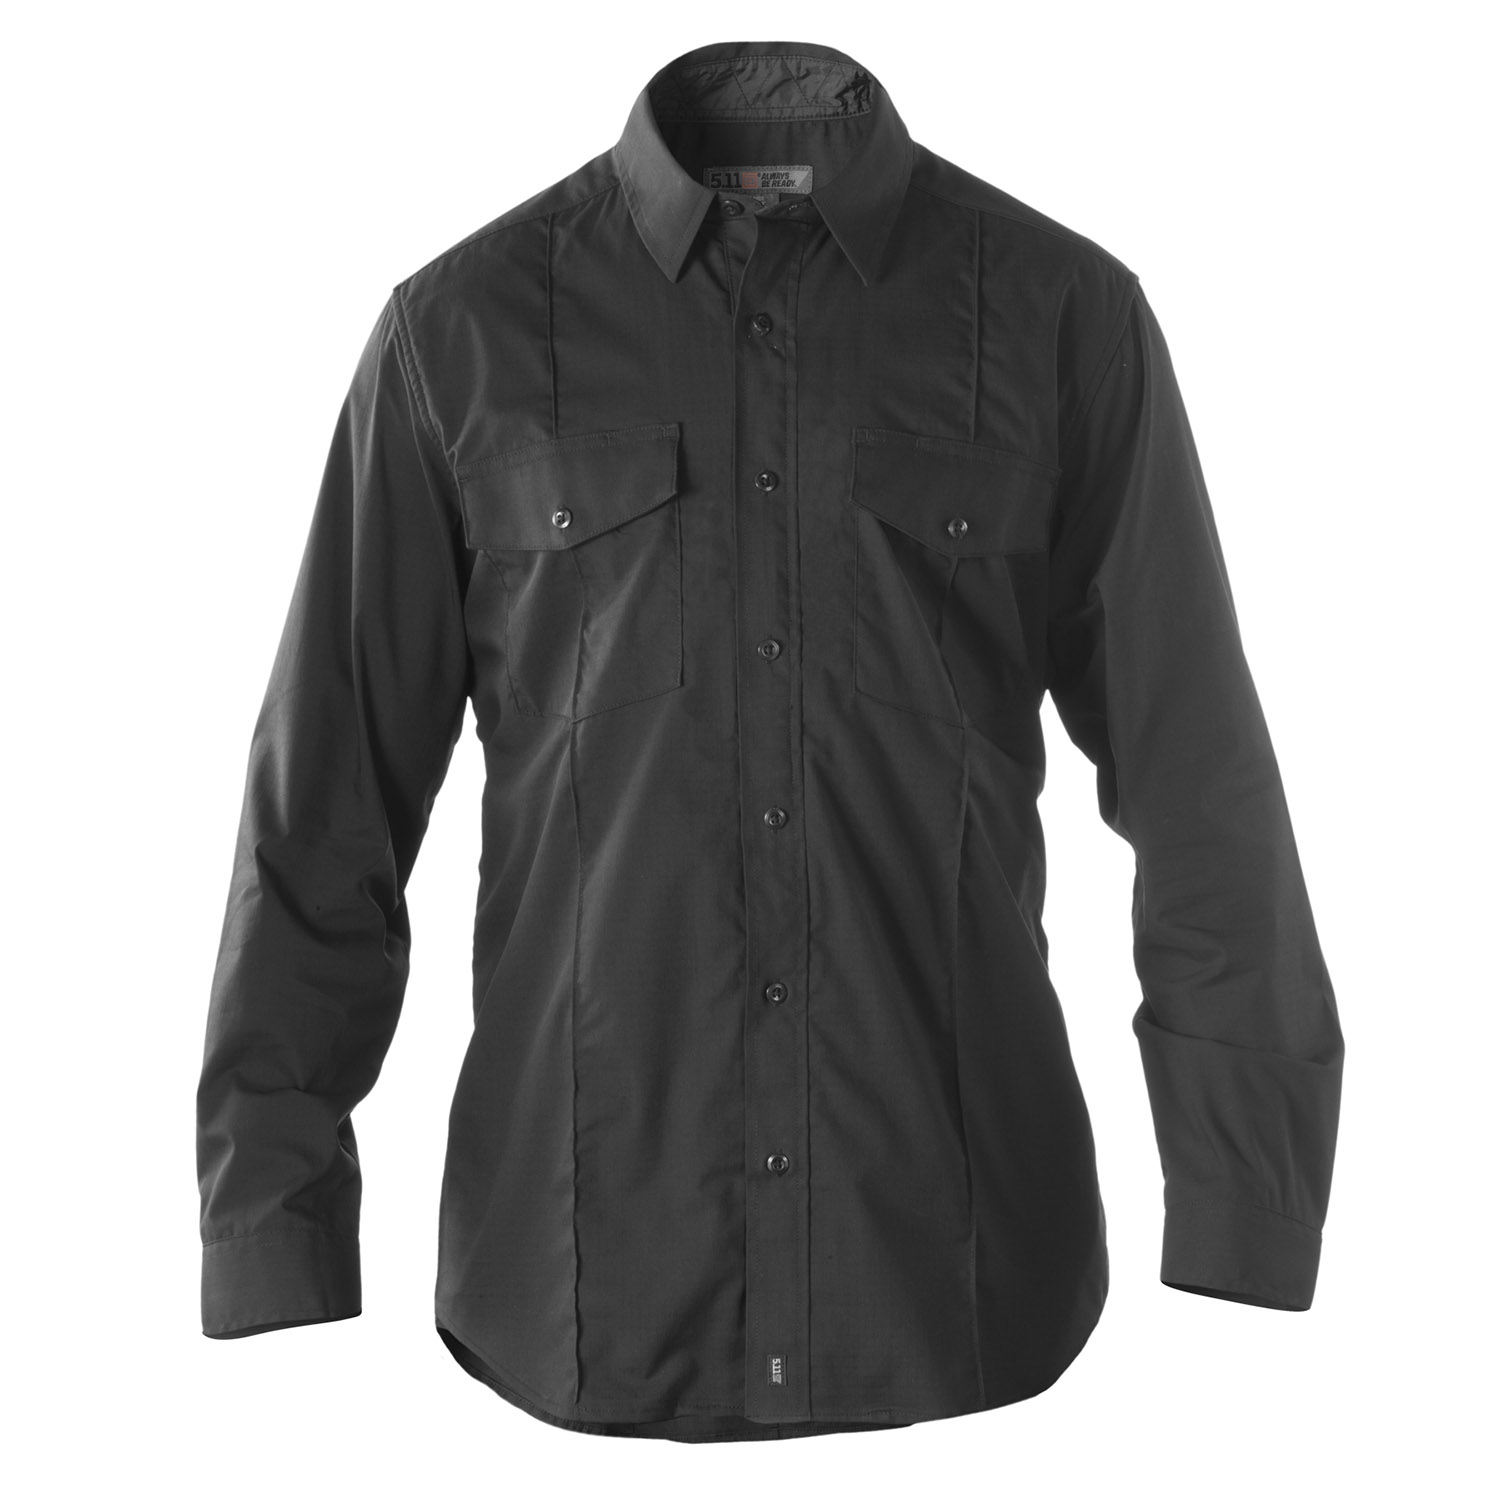 5.11 Tactical Men's Long Sleeve Class A Stryke PDU Shirt